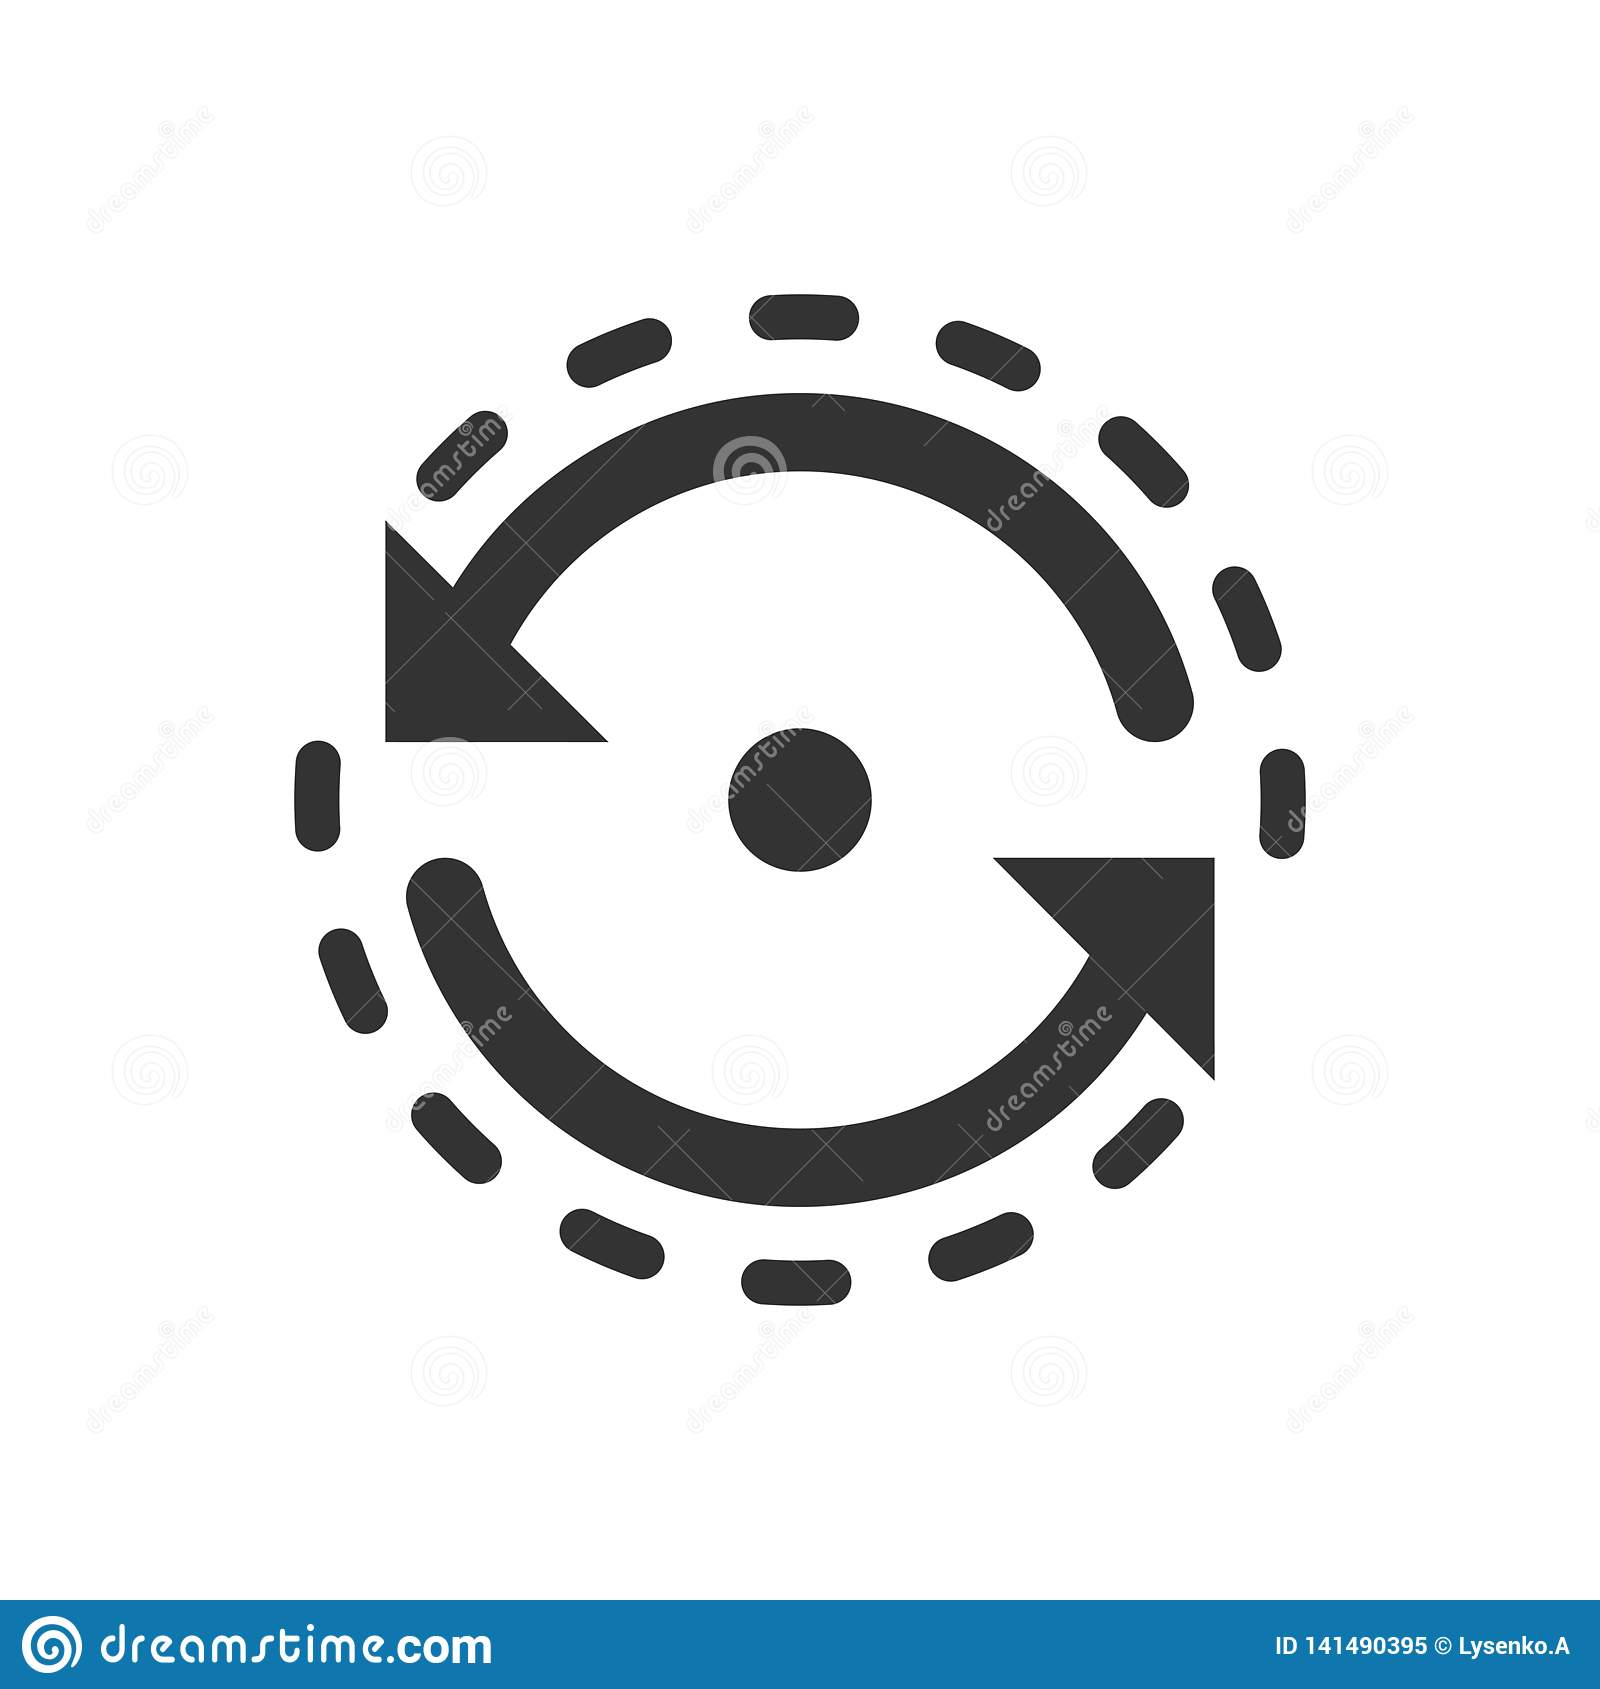 Oval with arrows icon in flat style. Consistency repeat vector illustration on white isolated background. Reload rotation business